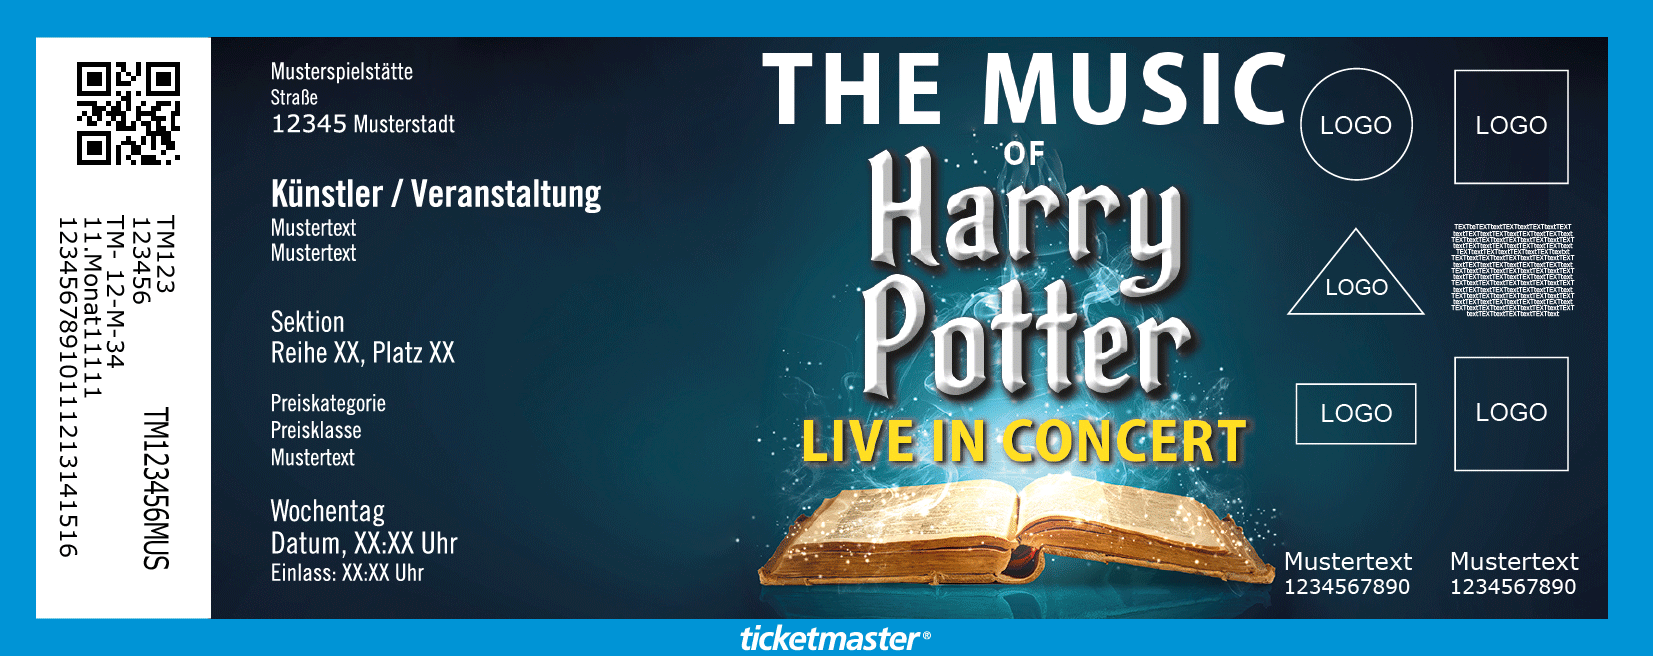 The Music Of Harry Potter Live In Concert Tickets Berlin 22 01 2022